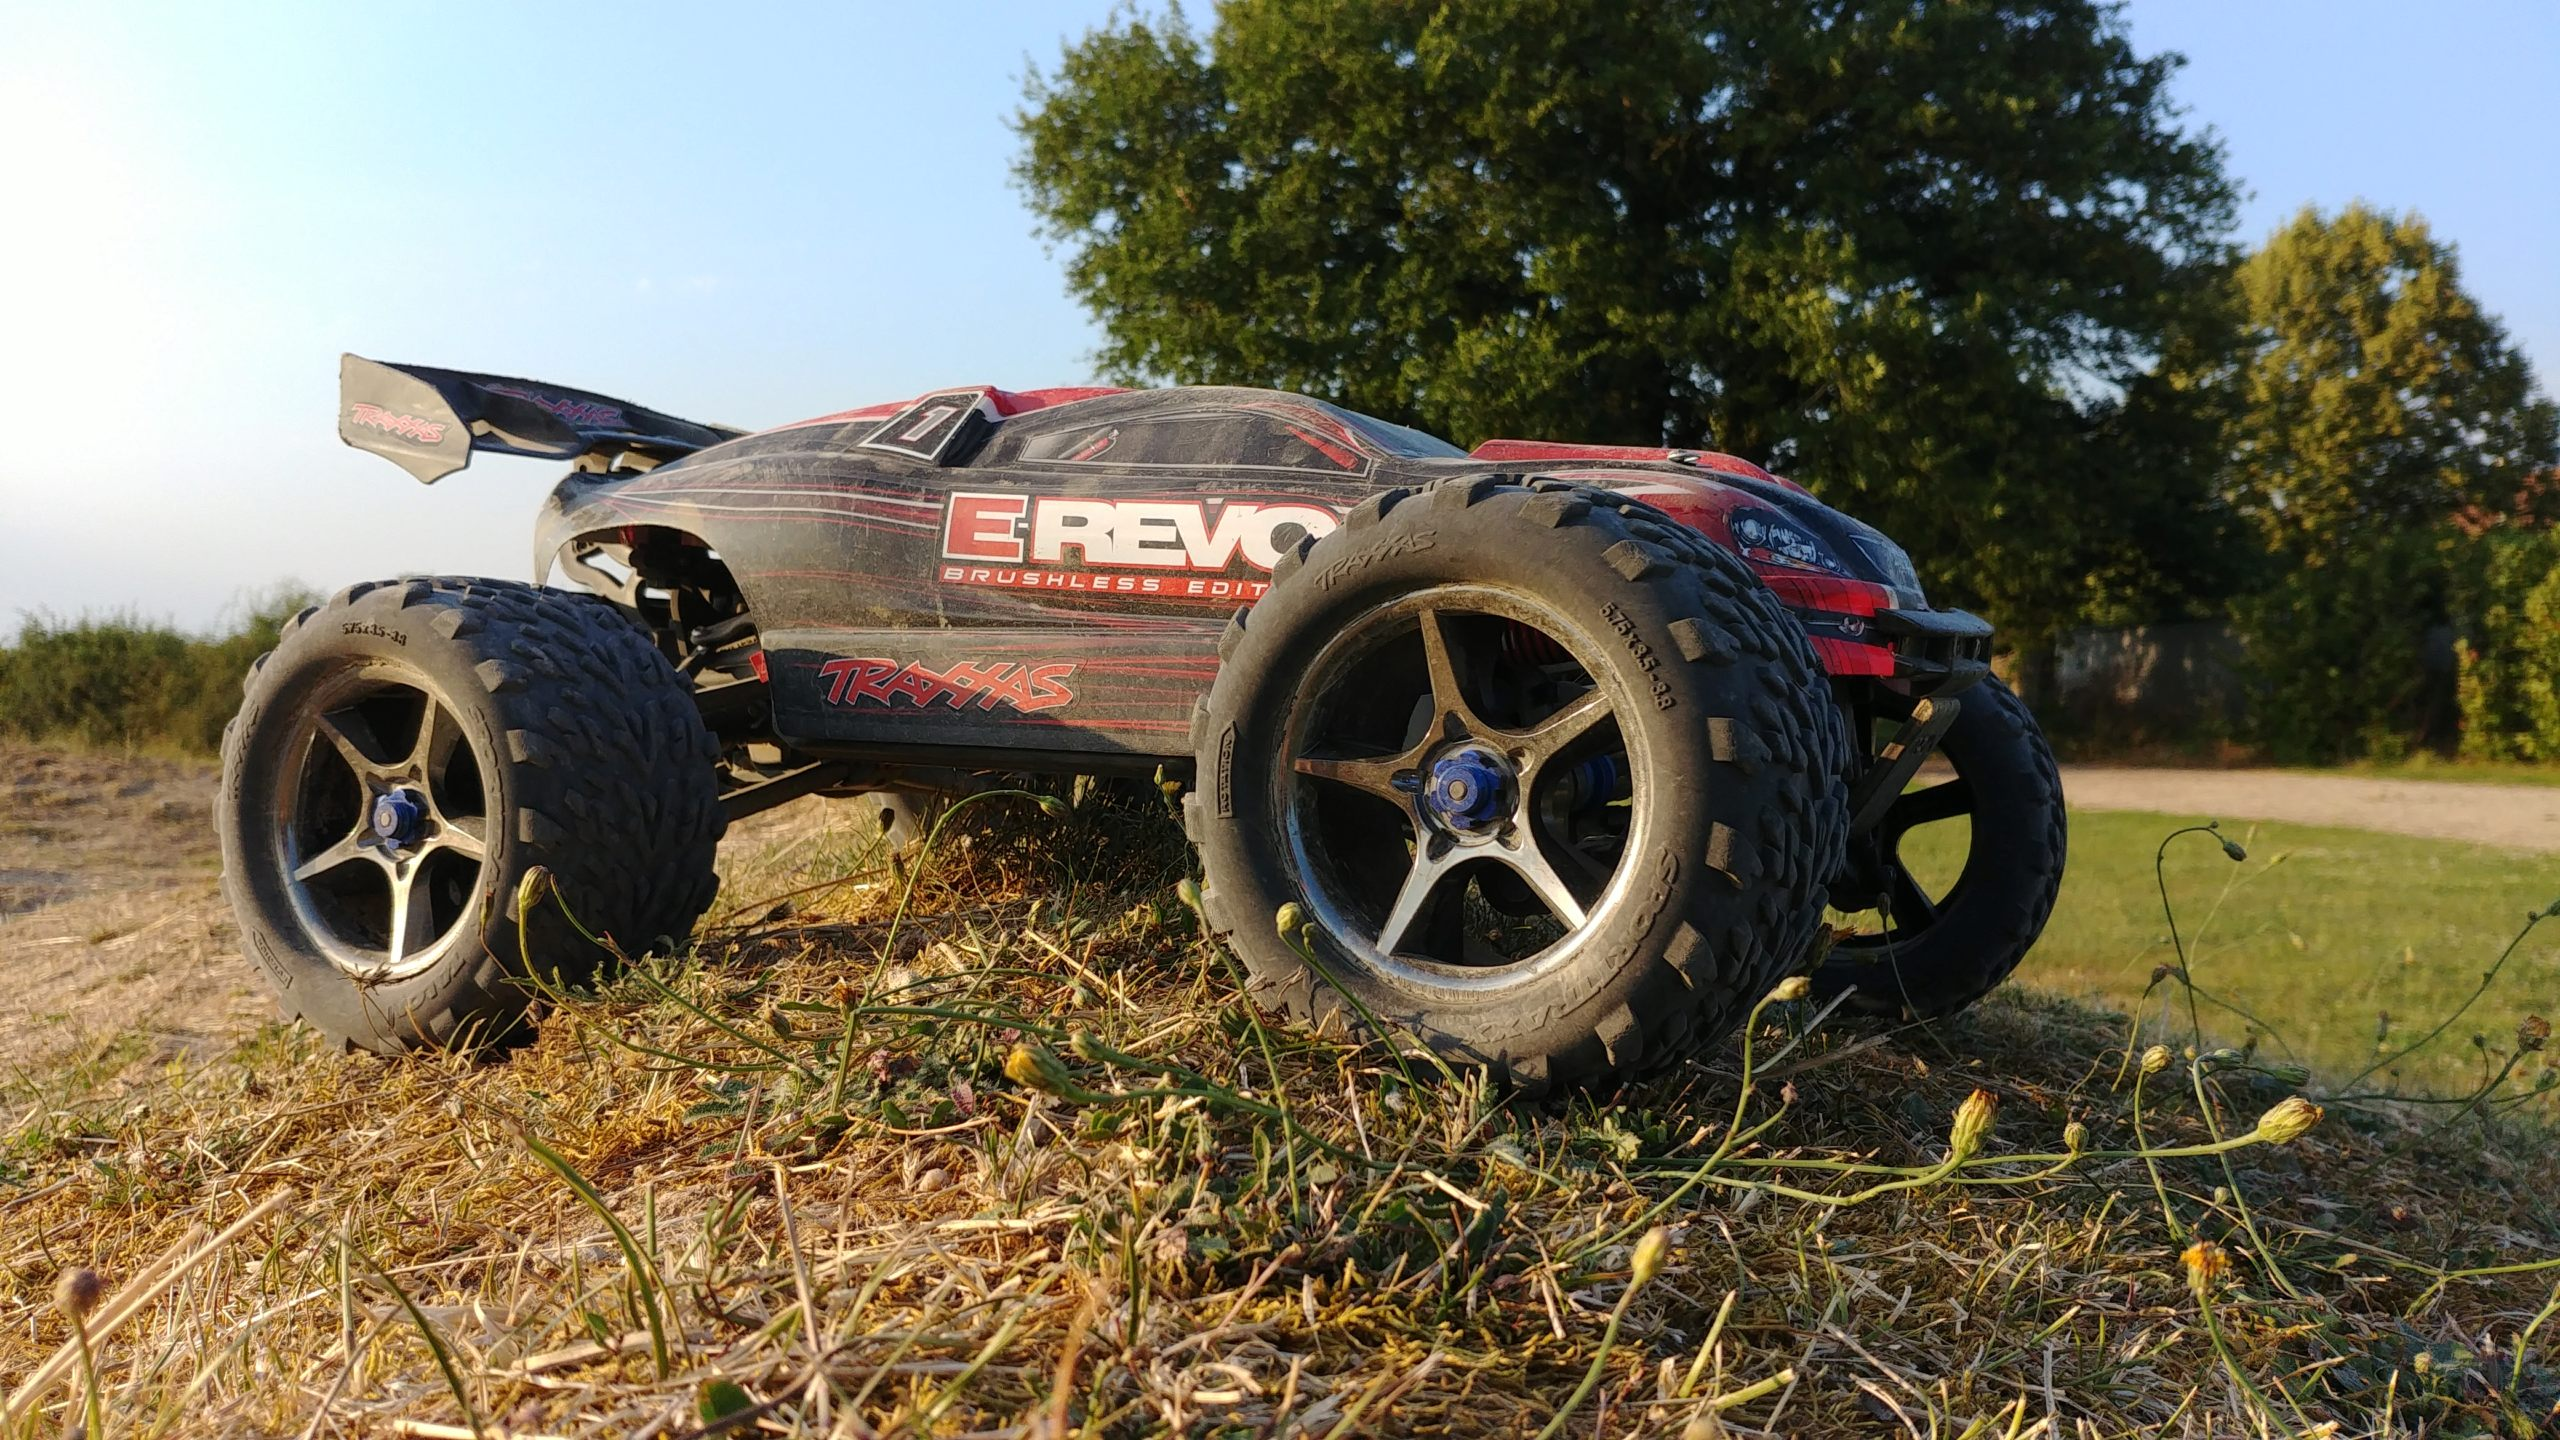 La E-Revo Brushless Edition d'ov4n - Page 2 20180721